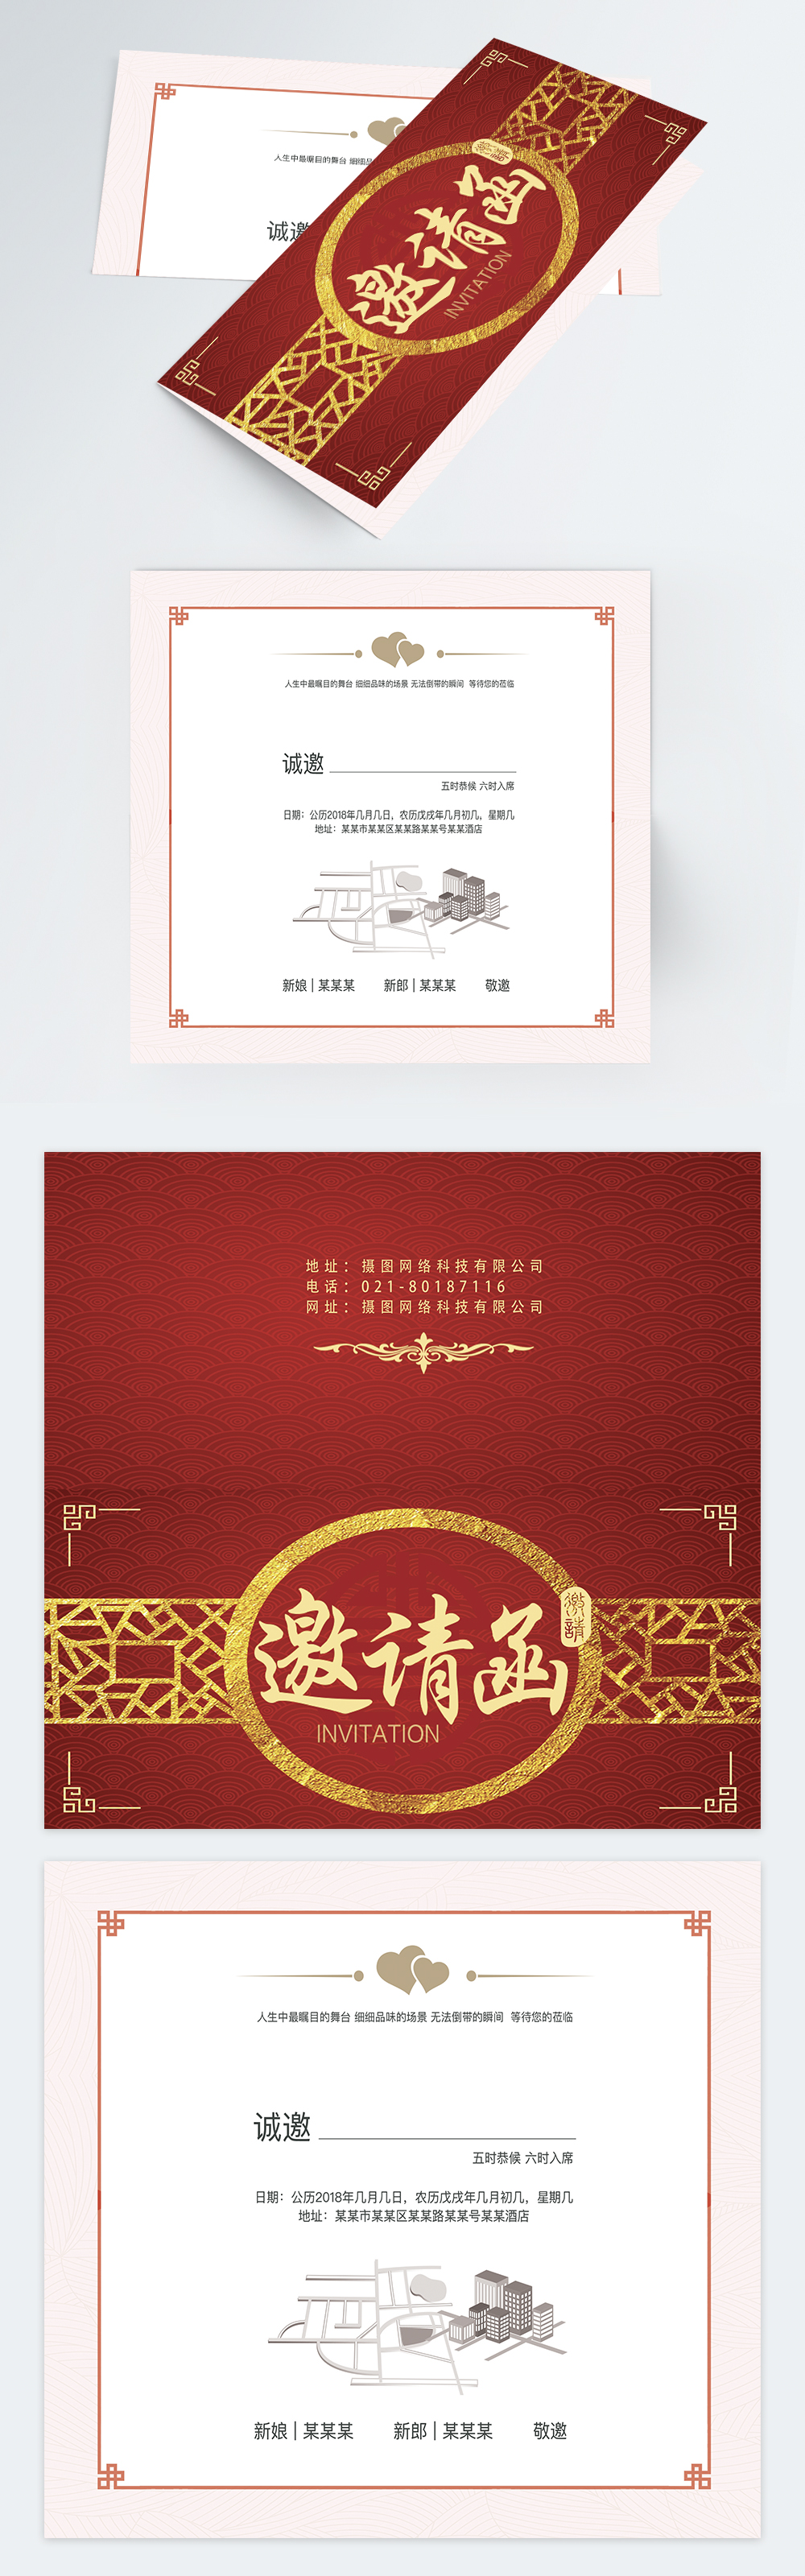 Red wedding invitation letter template image_picture free download ...